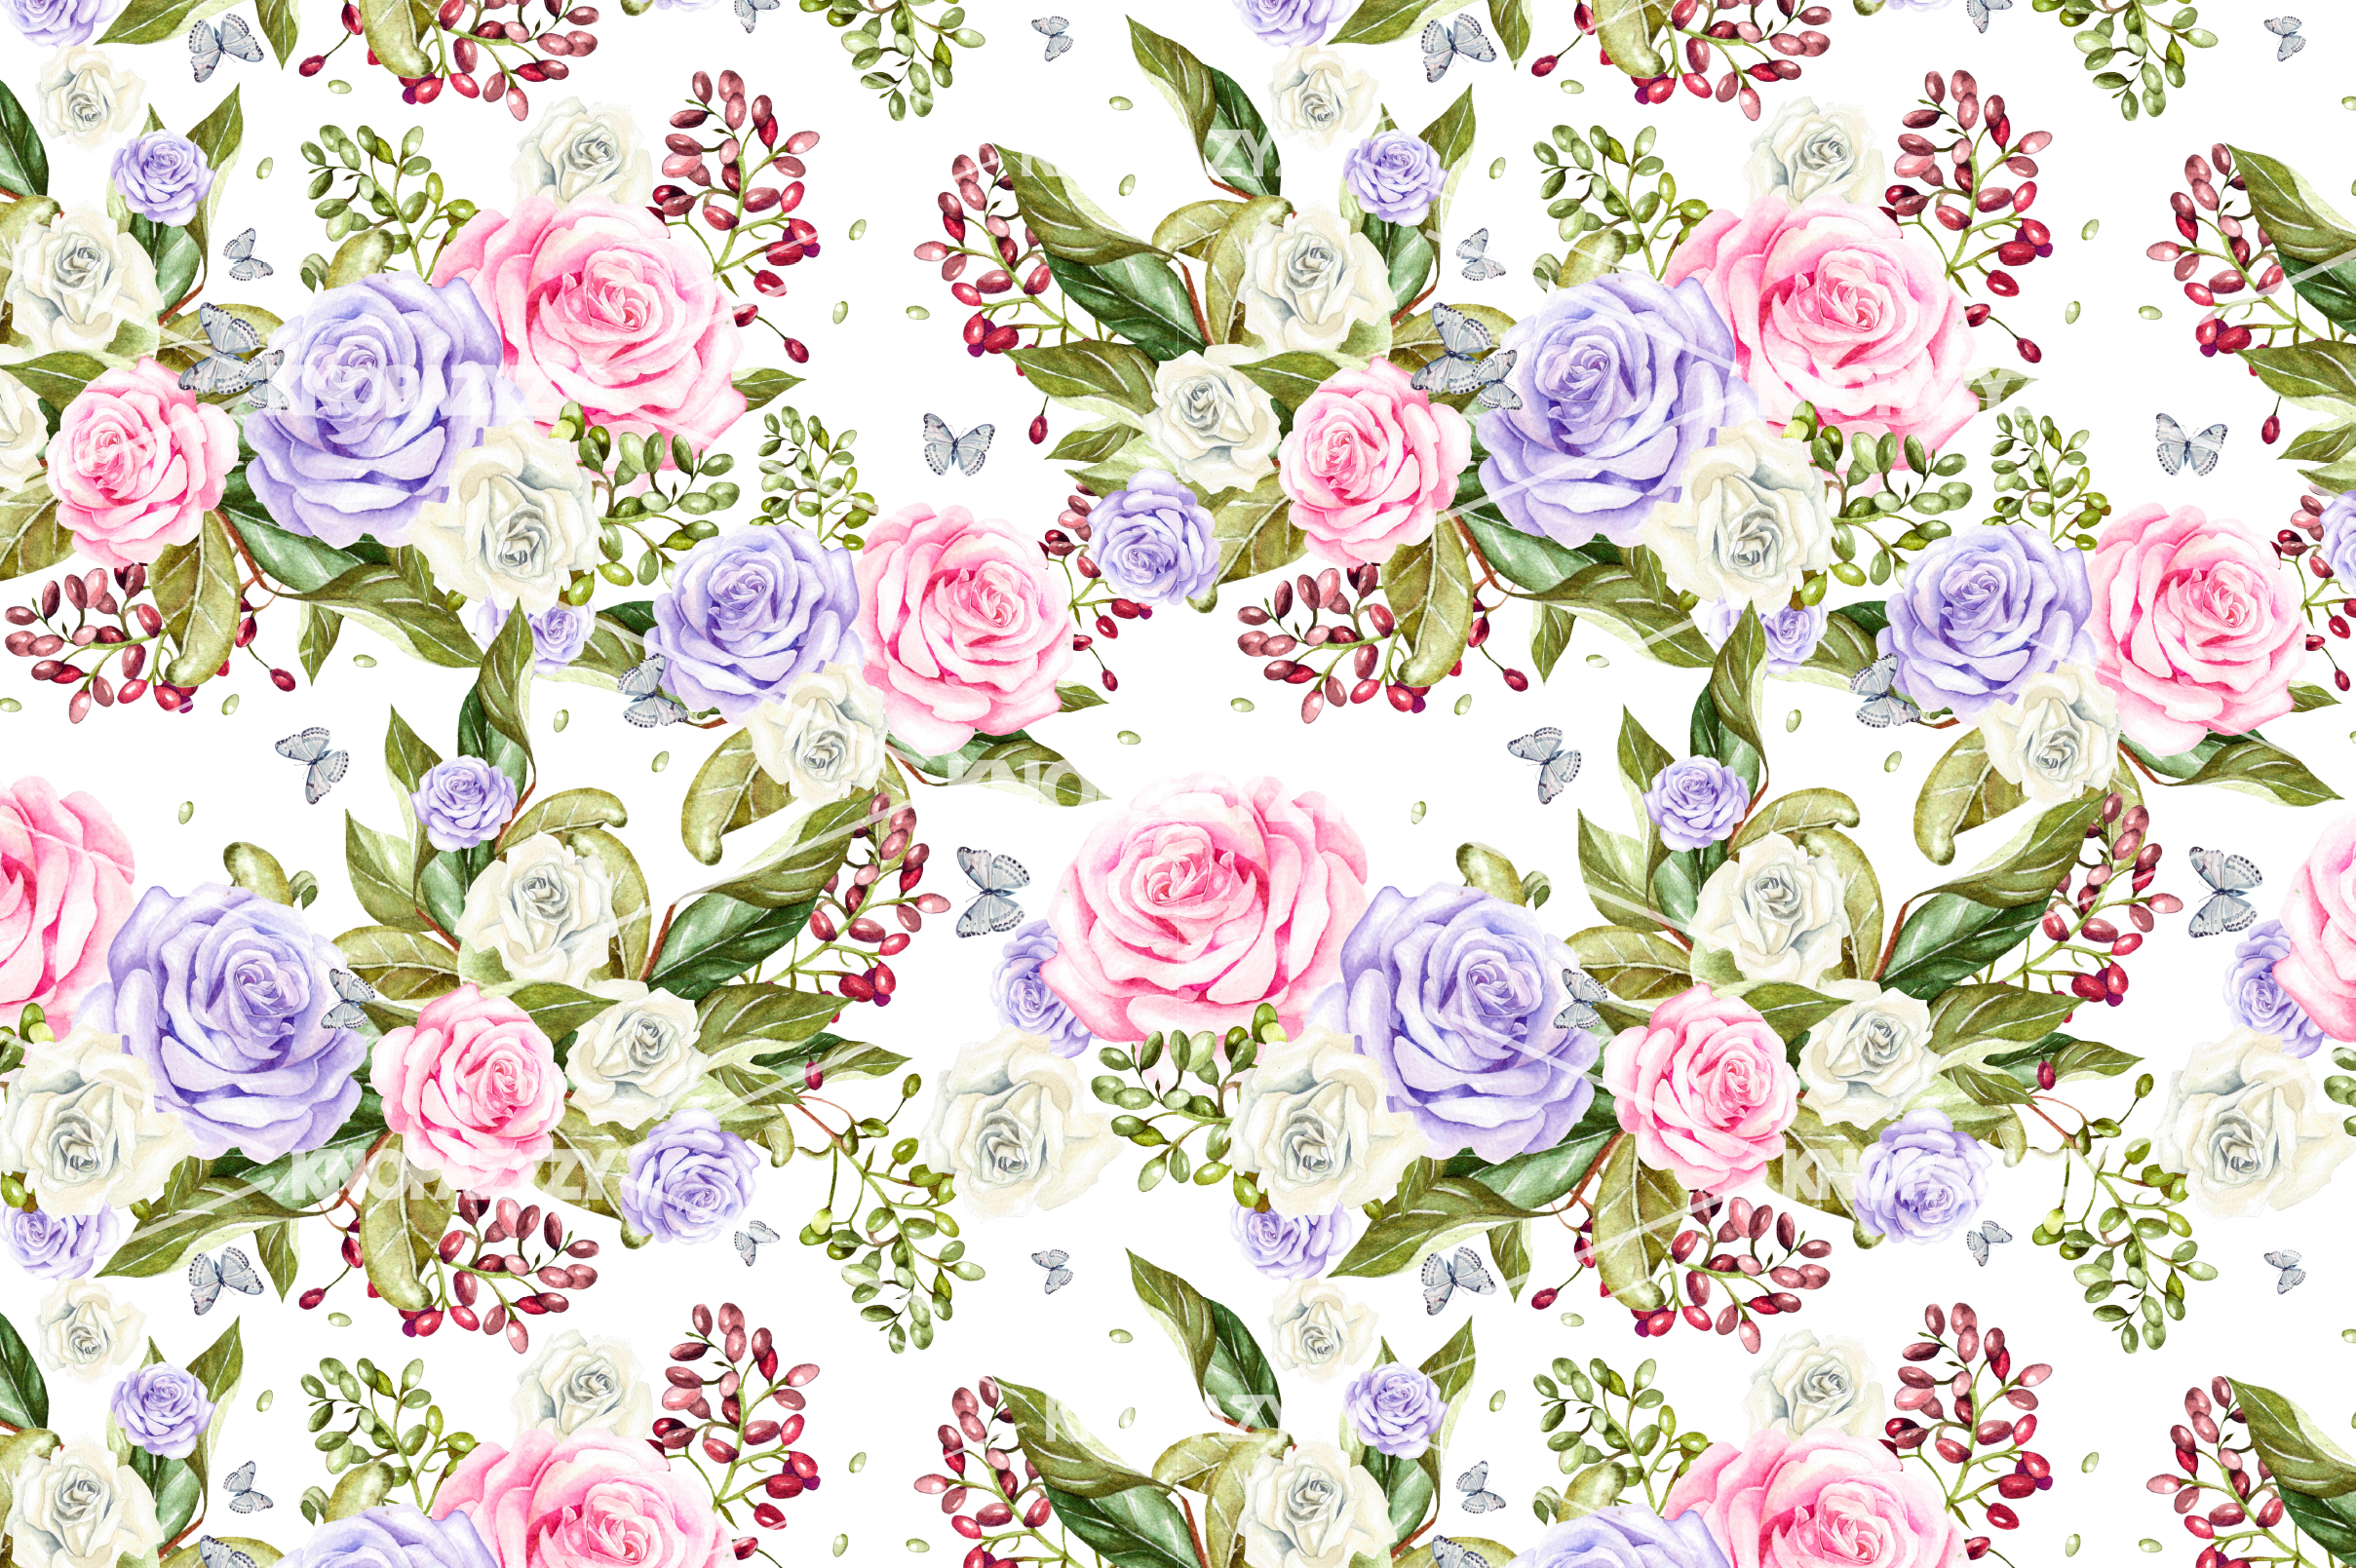 14 Hand drawn watercolor patterns example image 2